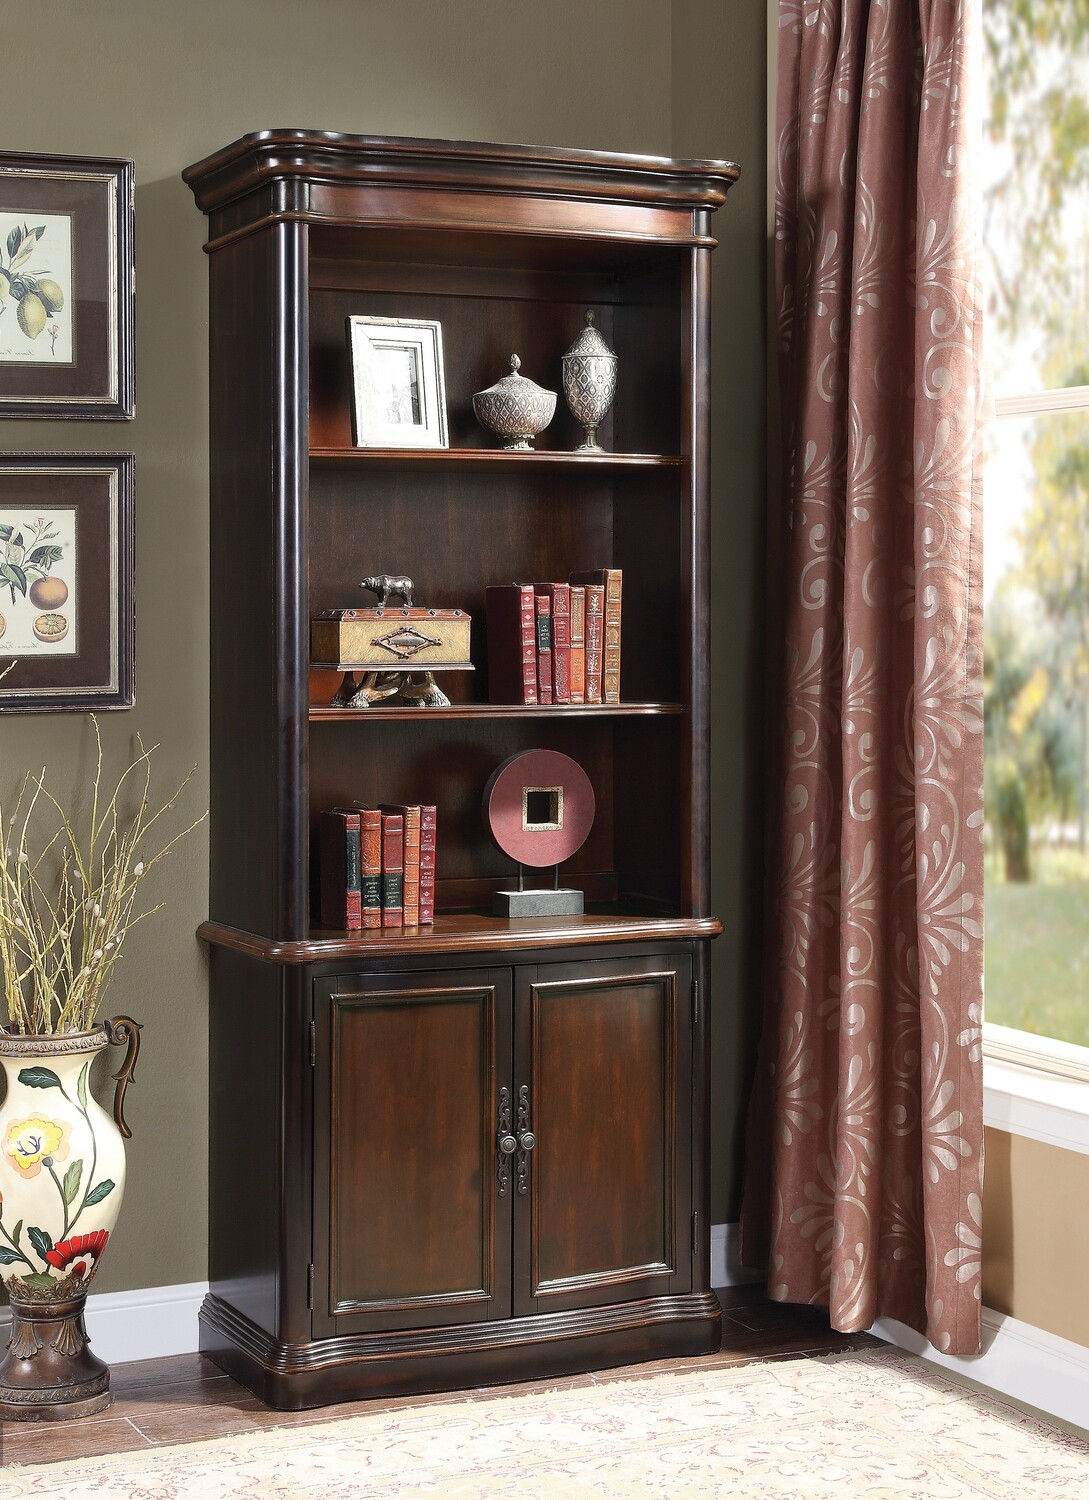 3-tier Bookcase with Cabinet